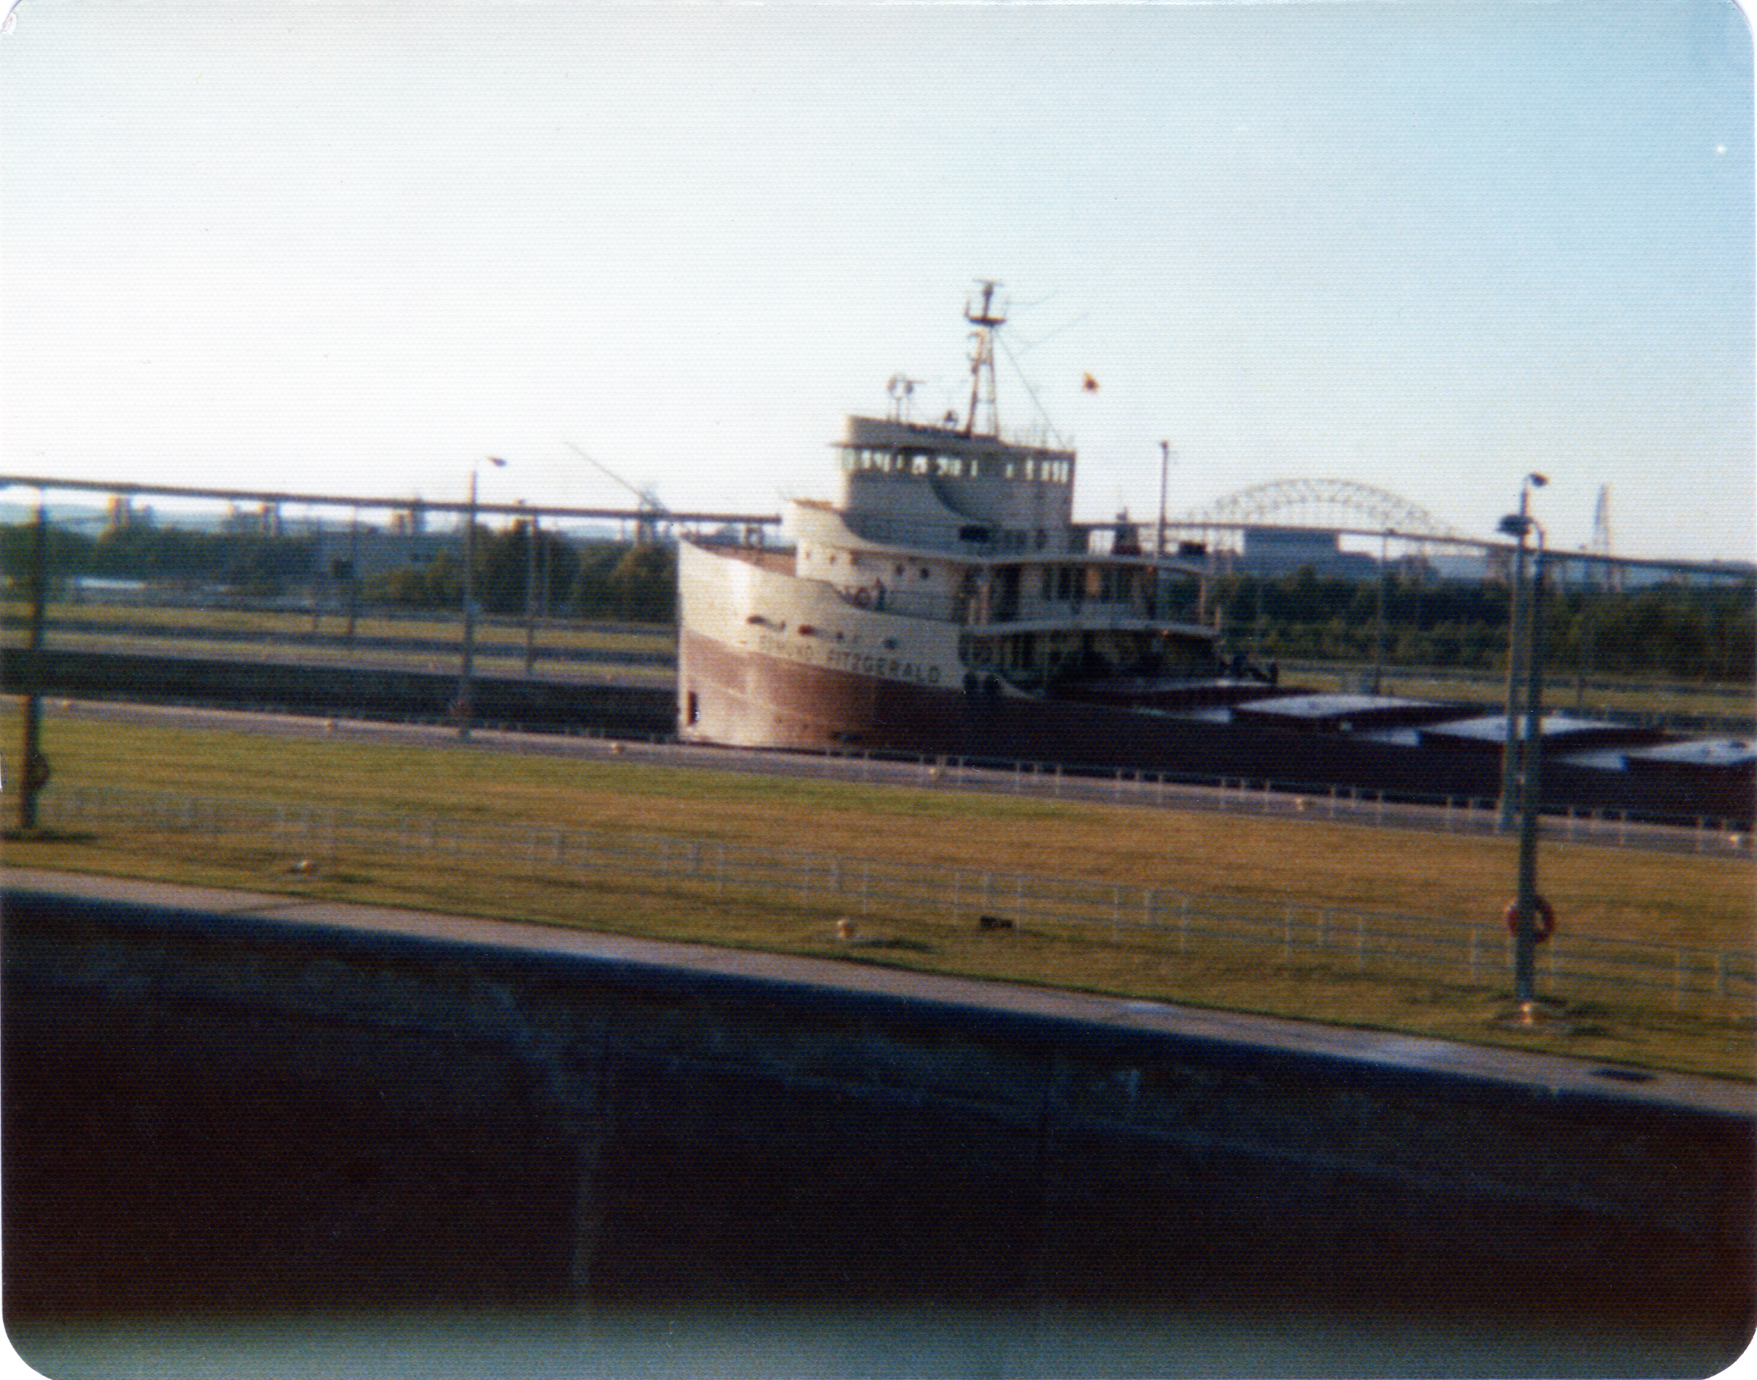 Never before published photo of the Edmund Fitzgerald, taken only months before it was lost with all hands in Lake Superior. Remember, you saw if first on Flickr! My father-in-law took this shot. He told my wife that he wasn't taking a picture of the Big Fitz; he just wanted a photo of the locks, and this happened to be in the photo. Unfortunately, the negative is long gone and this photo was printed on some sort of rough-coated matte paper so that it could be mailed as a postcard. My father-in-law didn't realize until months after the sinking that he had a picture of this vessel. The photo was taken in August 1975; the Edmund Fitgerald sank in November of that year. It was, ironically, the sinking that made this ship famous. After it was built it was the largest ship on the Great Lakes, but other than that, it was just another anonymous working vessel plying the waters between Wisconsin and Michigan.